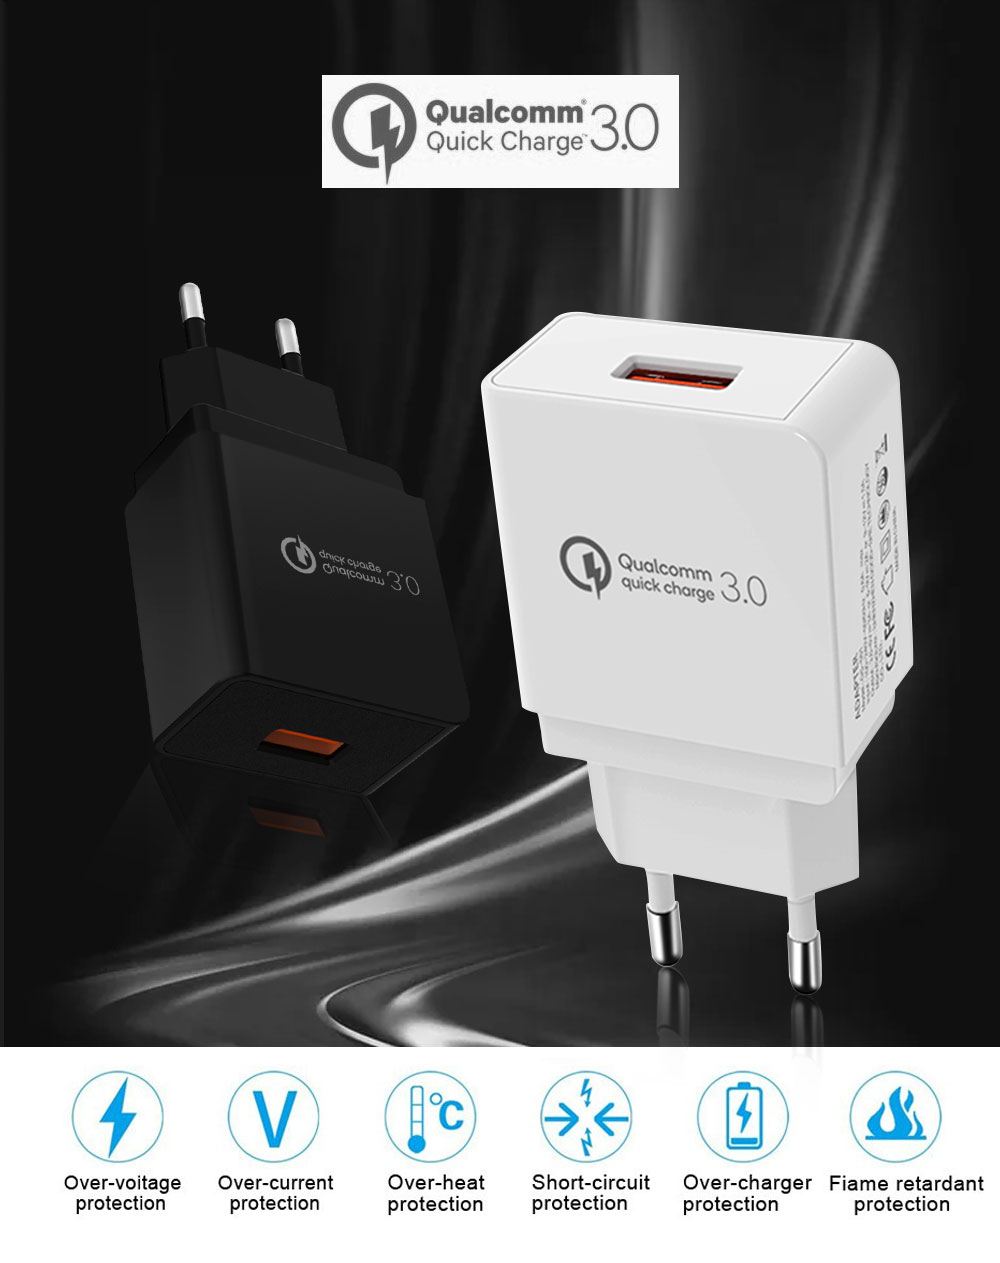 Quick Charge 3.0 18W USB Wall Charger Adapter Smart IC for Samsung S10 S9 Note 9 8 Xiaomi LG HTC Mobile Phone QC3.0 Fast Charger (1)